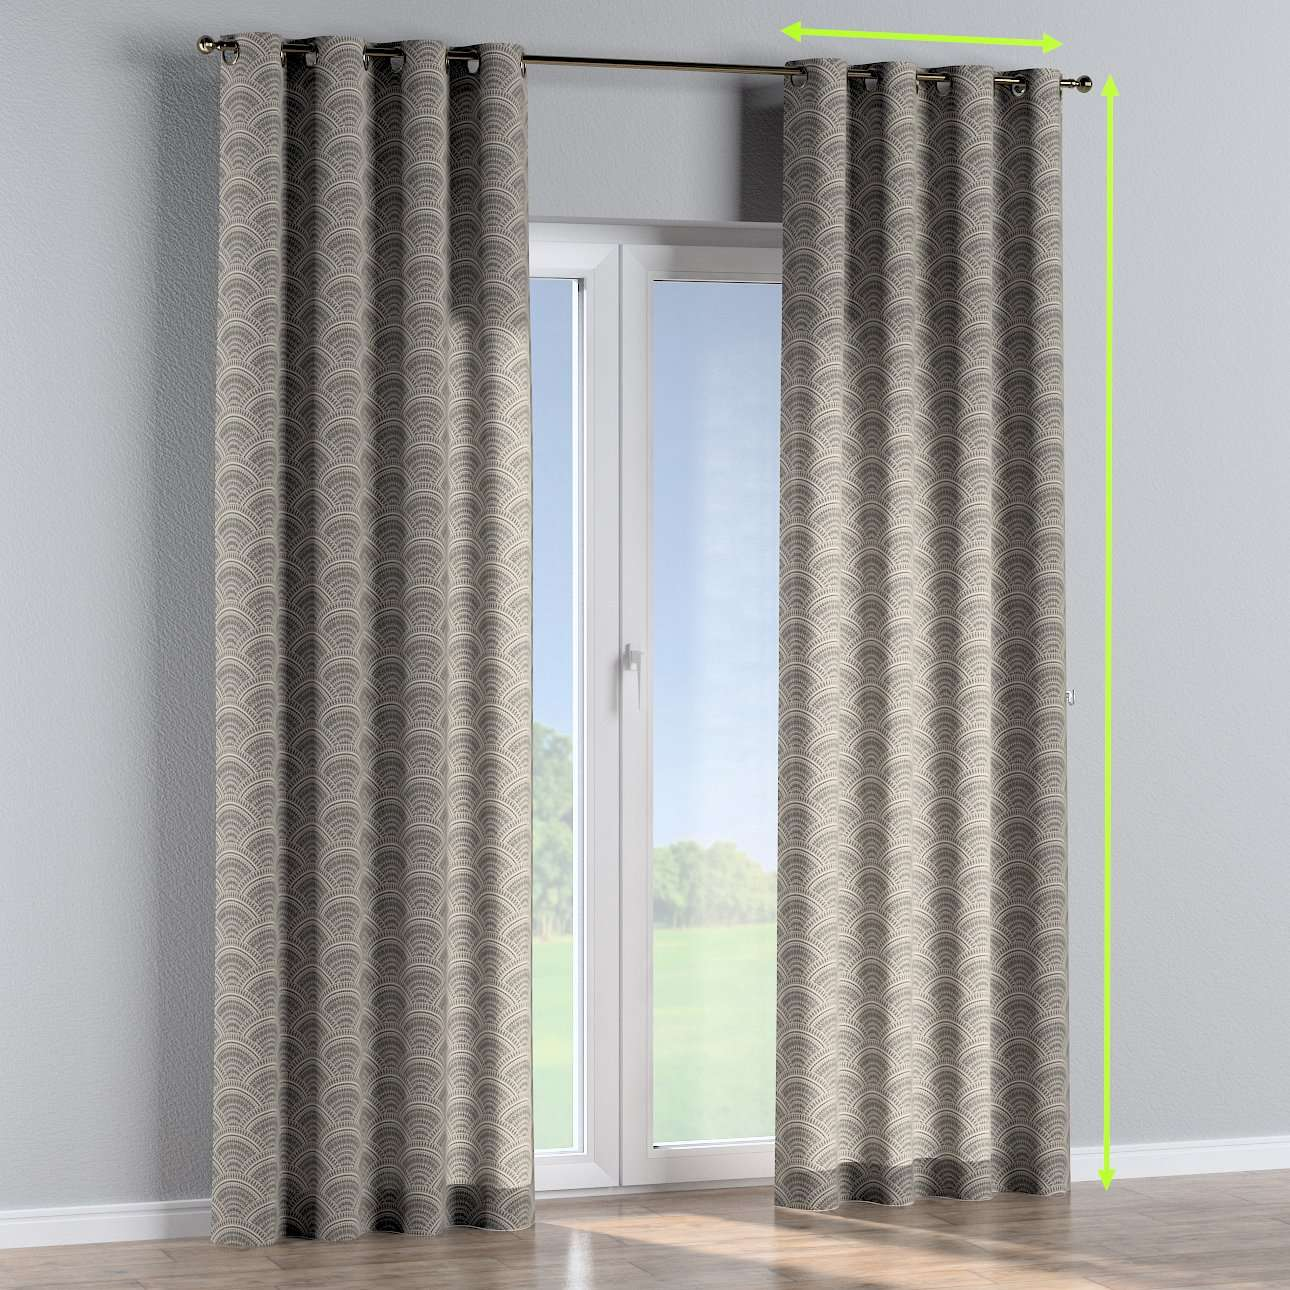 Eyelet curtains in collection Comic Book & Geo Prints, fabric: 141-19